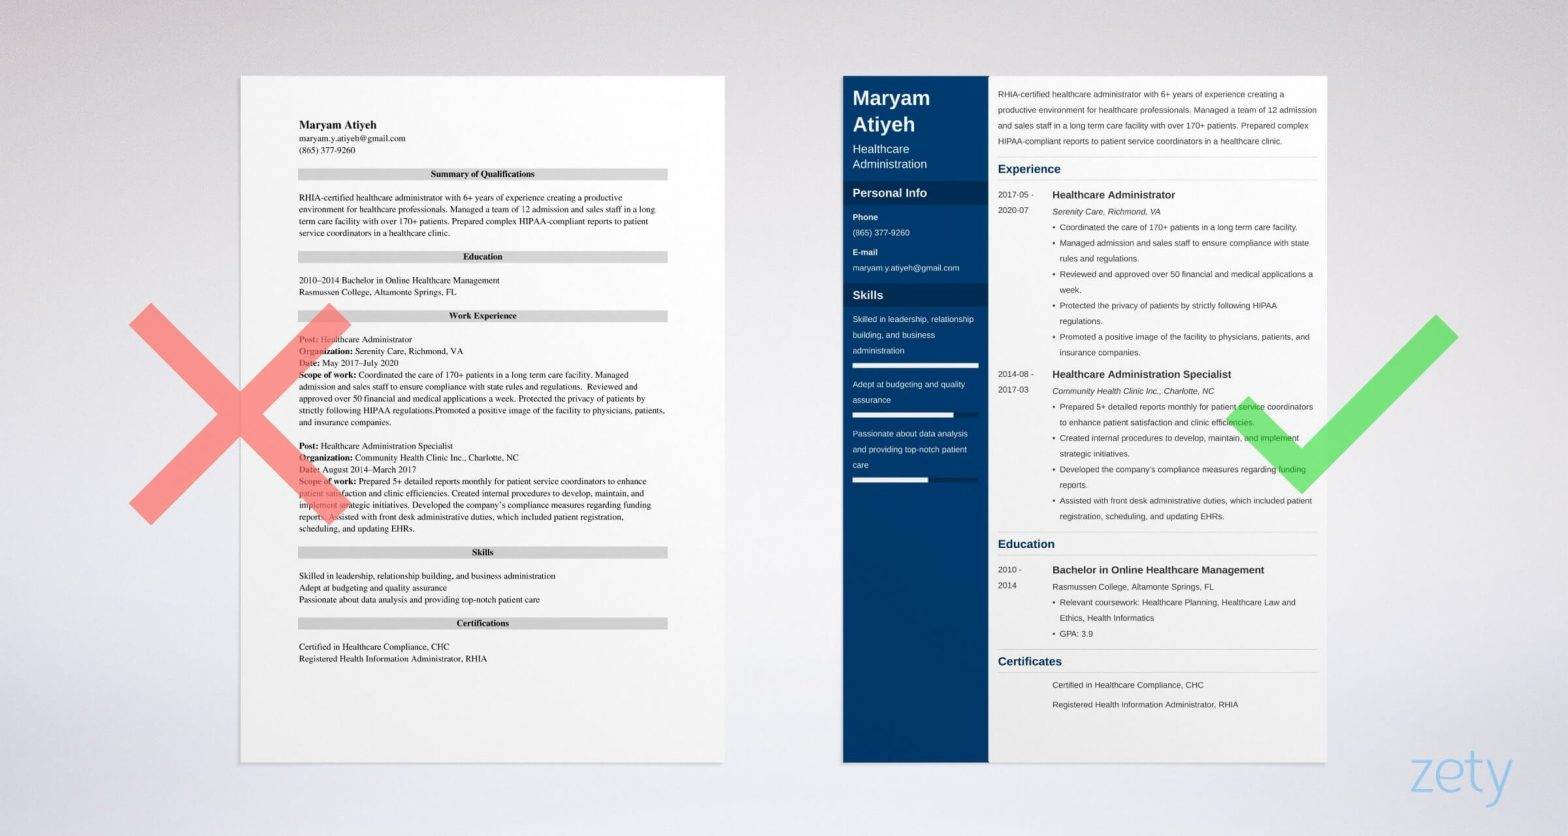 Sample Resume for Hospital Management Freshers Healthcare Administration Resume: Samples and Writing Guide